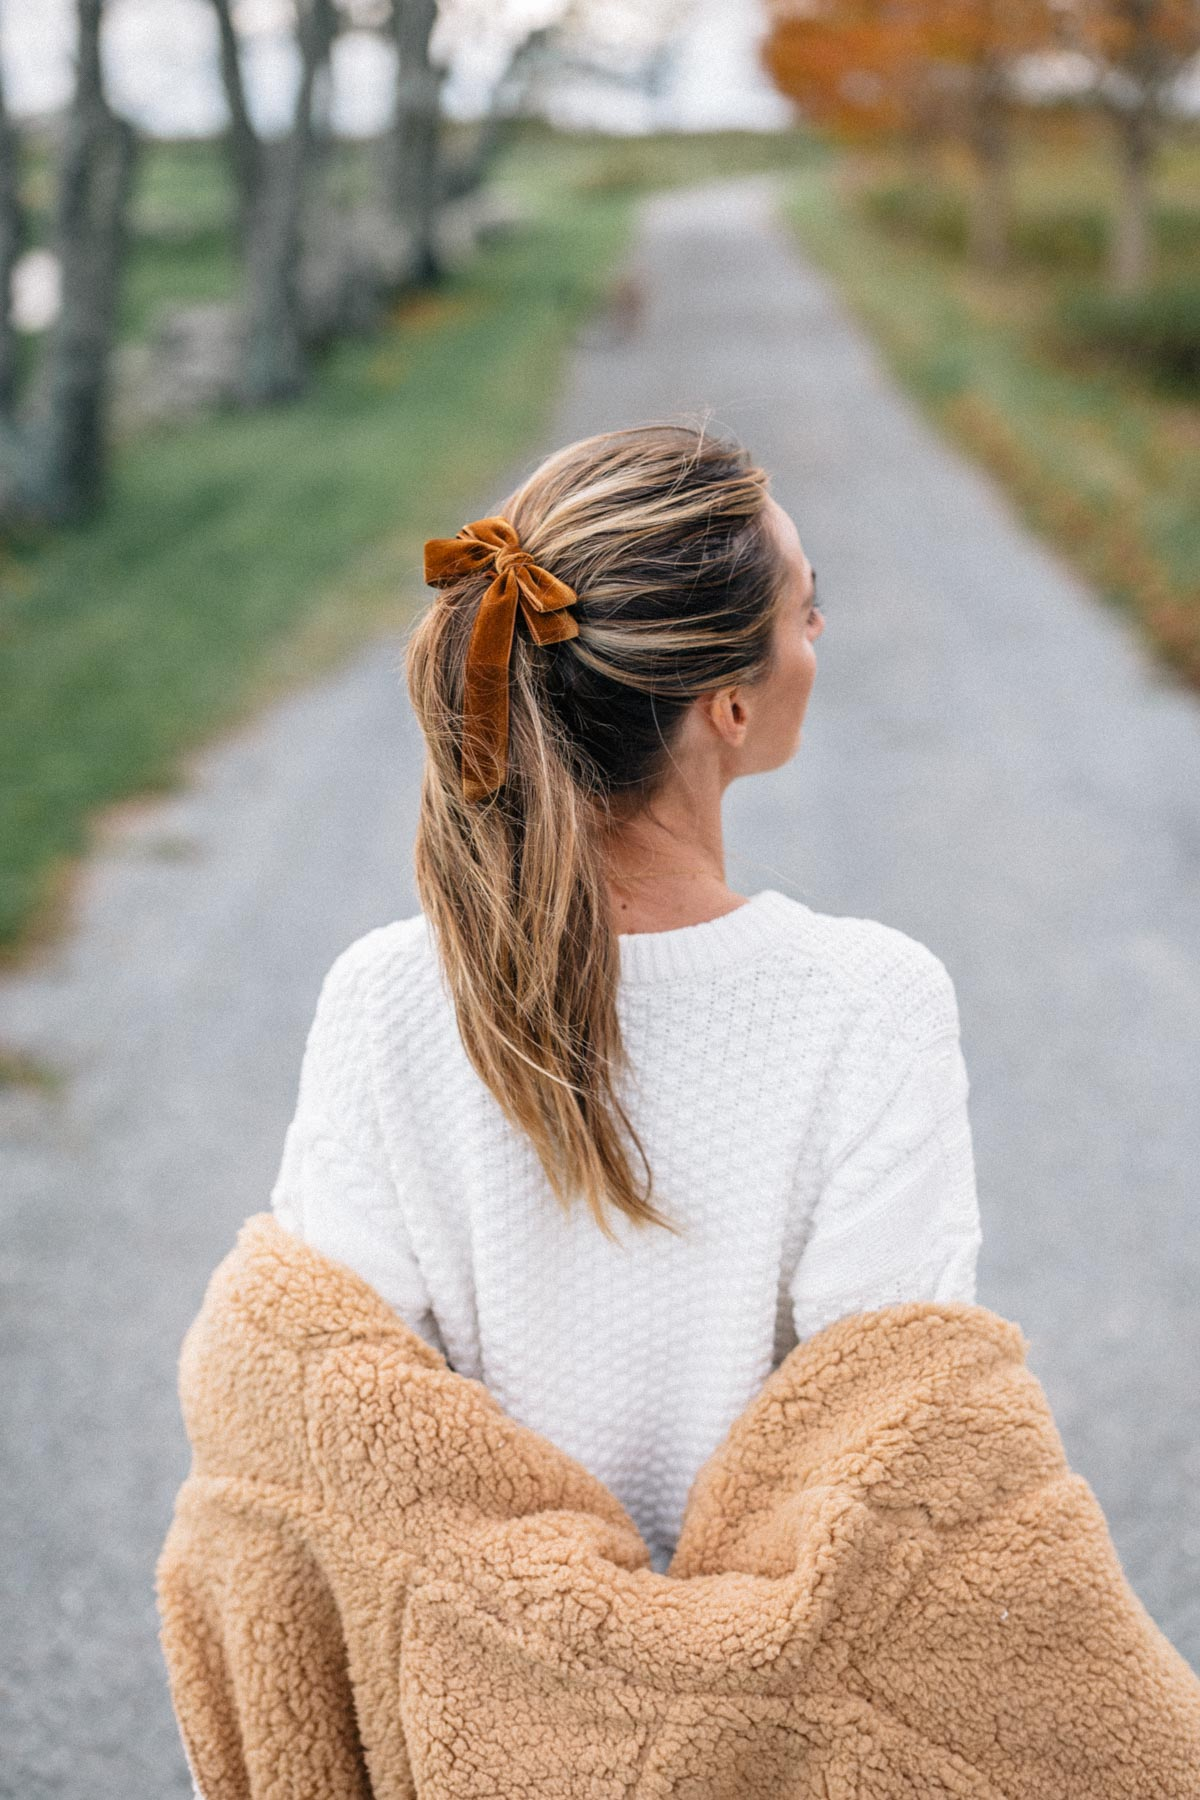 Jess Ann Kirby styles a fall look featuring the Urban Outfitters Magnolia Cozy Reversible Coat and a velvet bow from J.Crew